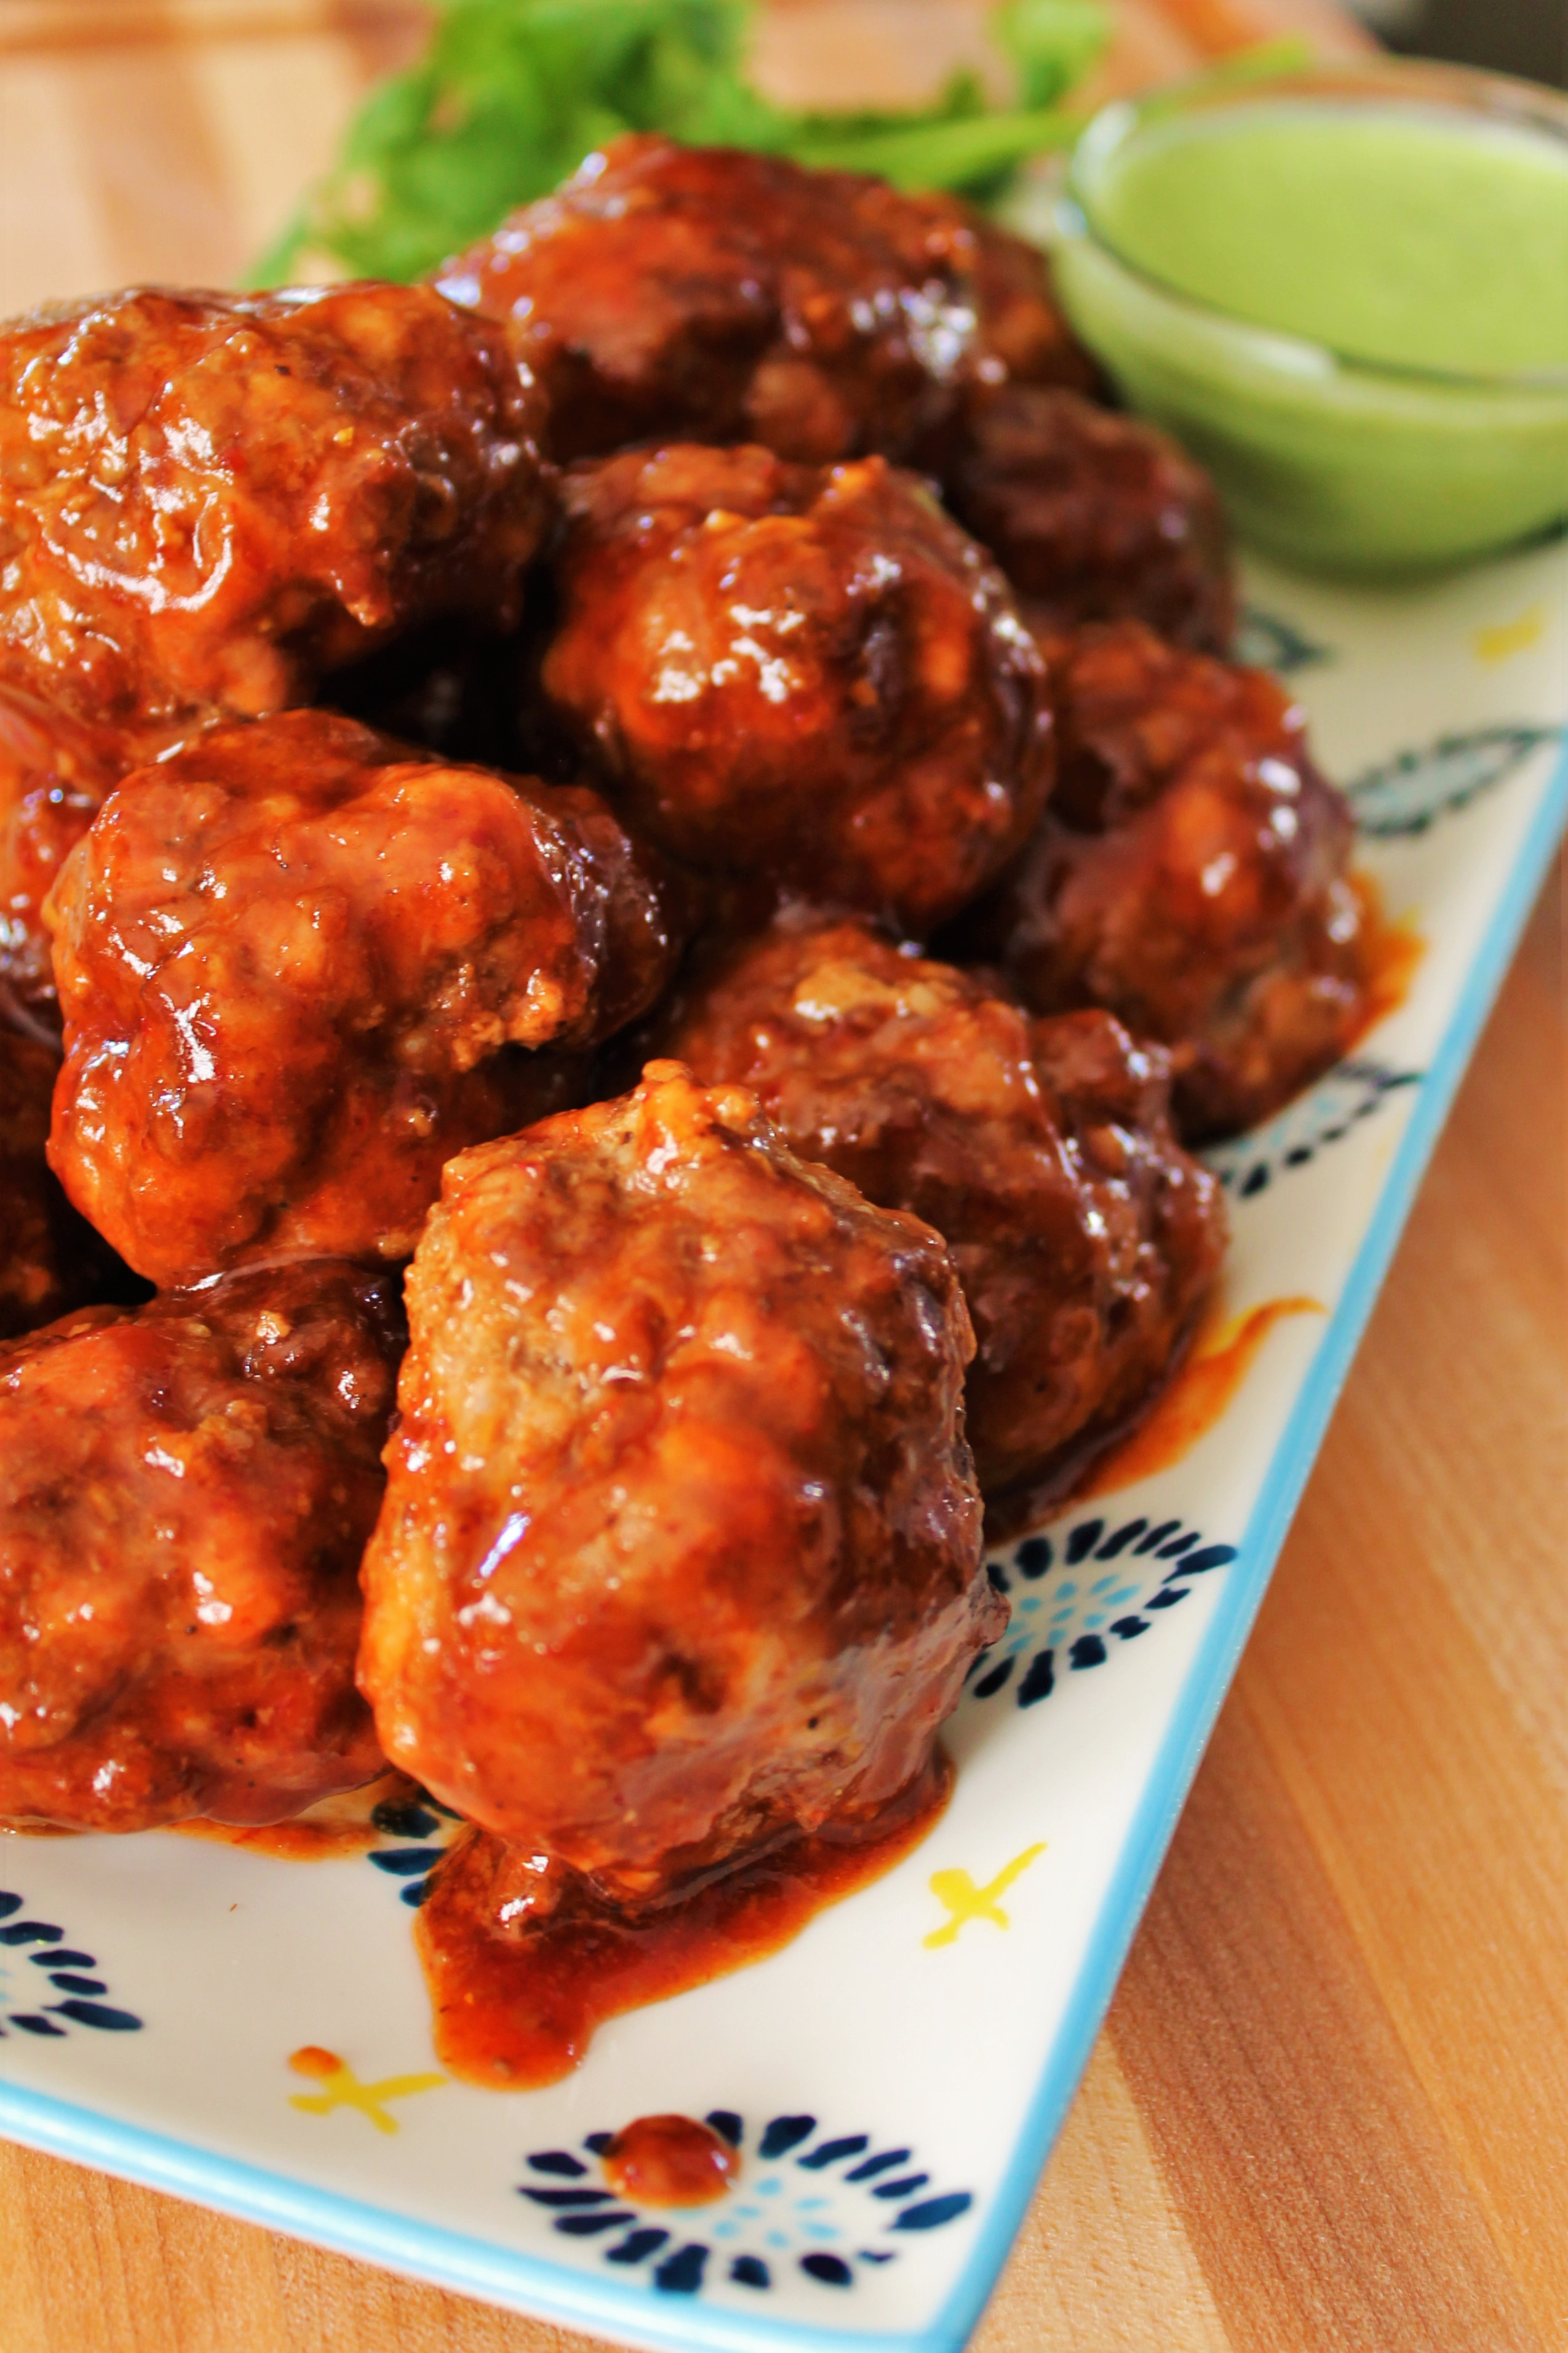 Spicy Chipotle Meatballs with Cilantro Lime Sauce